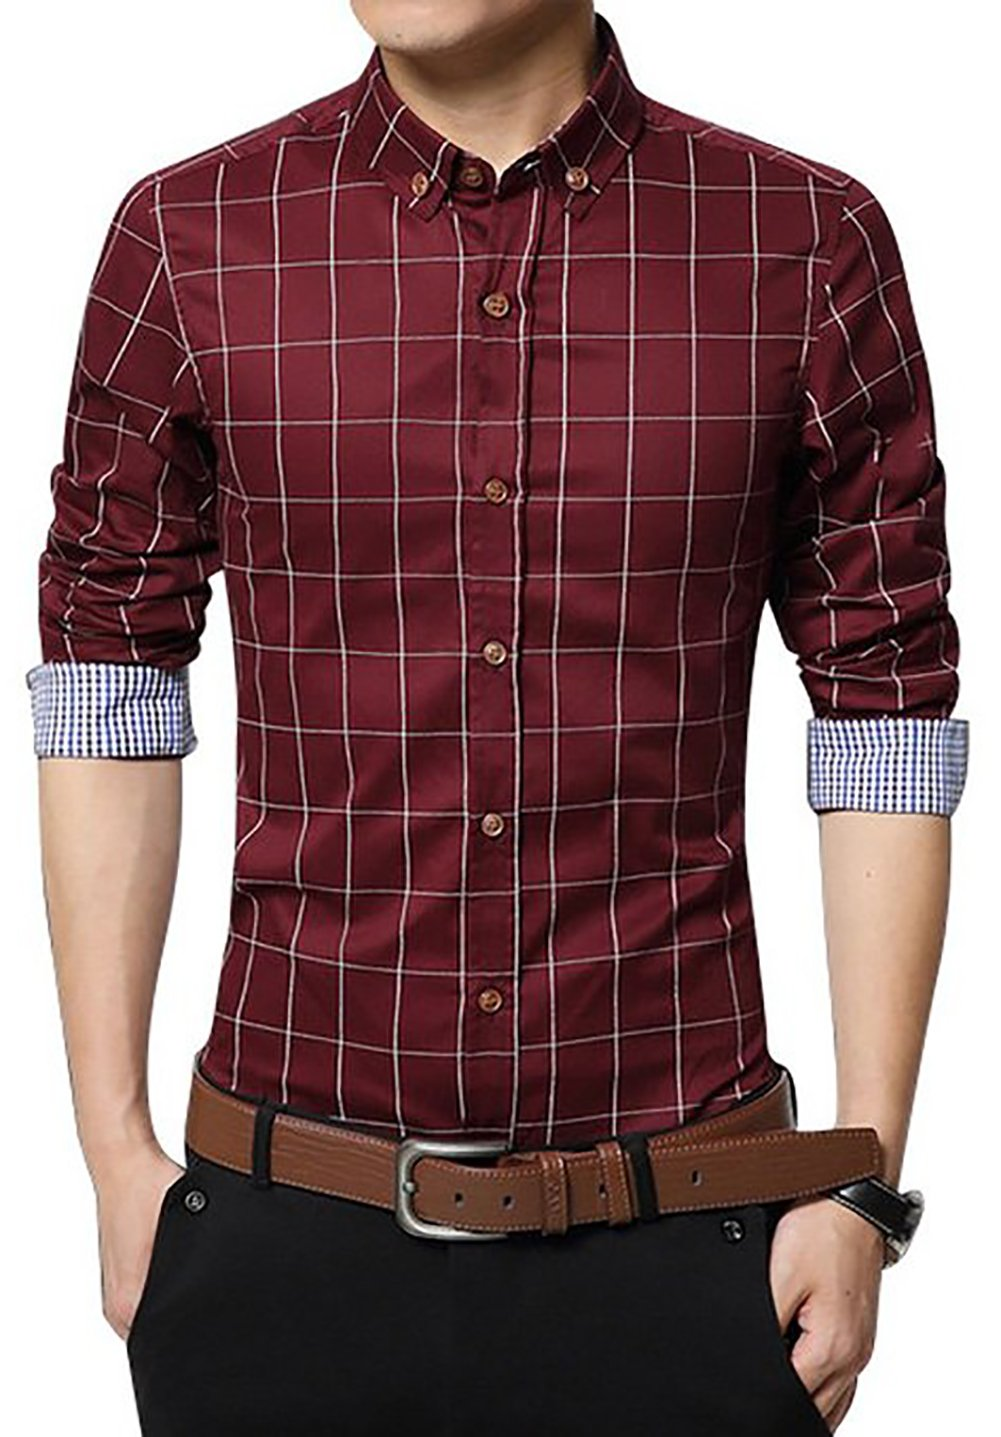 LOCALMODE Men's 100% Cotton Long Sleeve Plaid Slim Fit Button Down Dress Shirt,Wine Red,Large